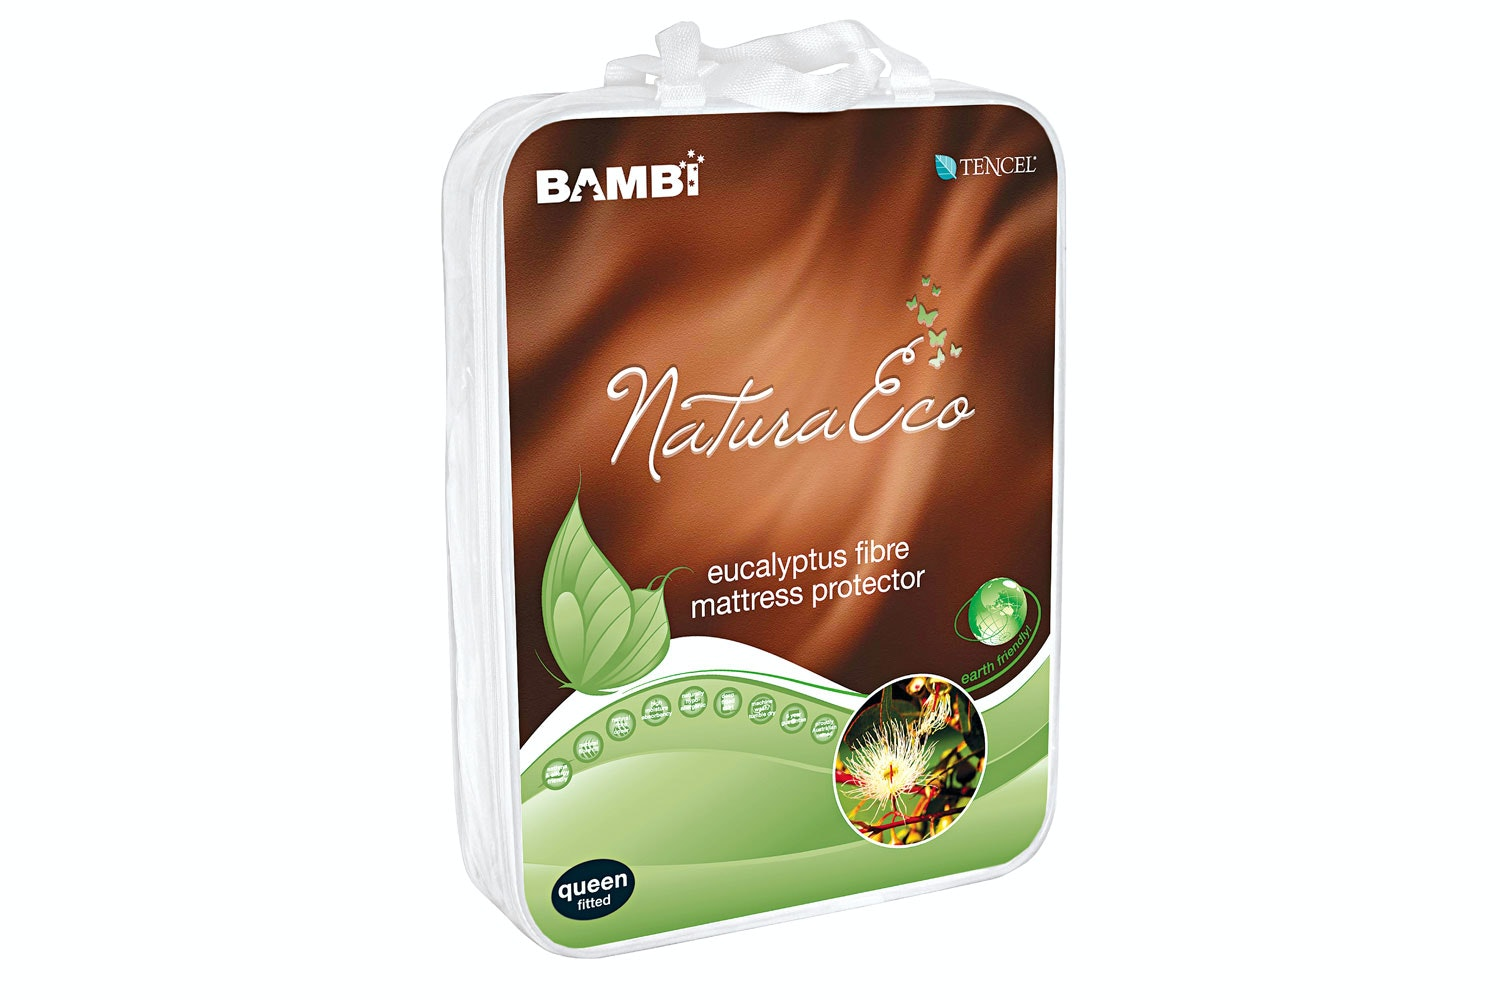 Bambi Tencel Mattress Protector